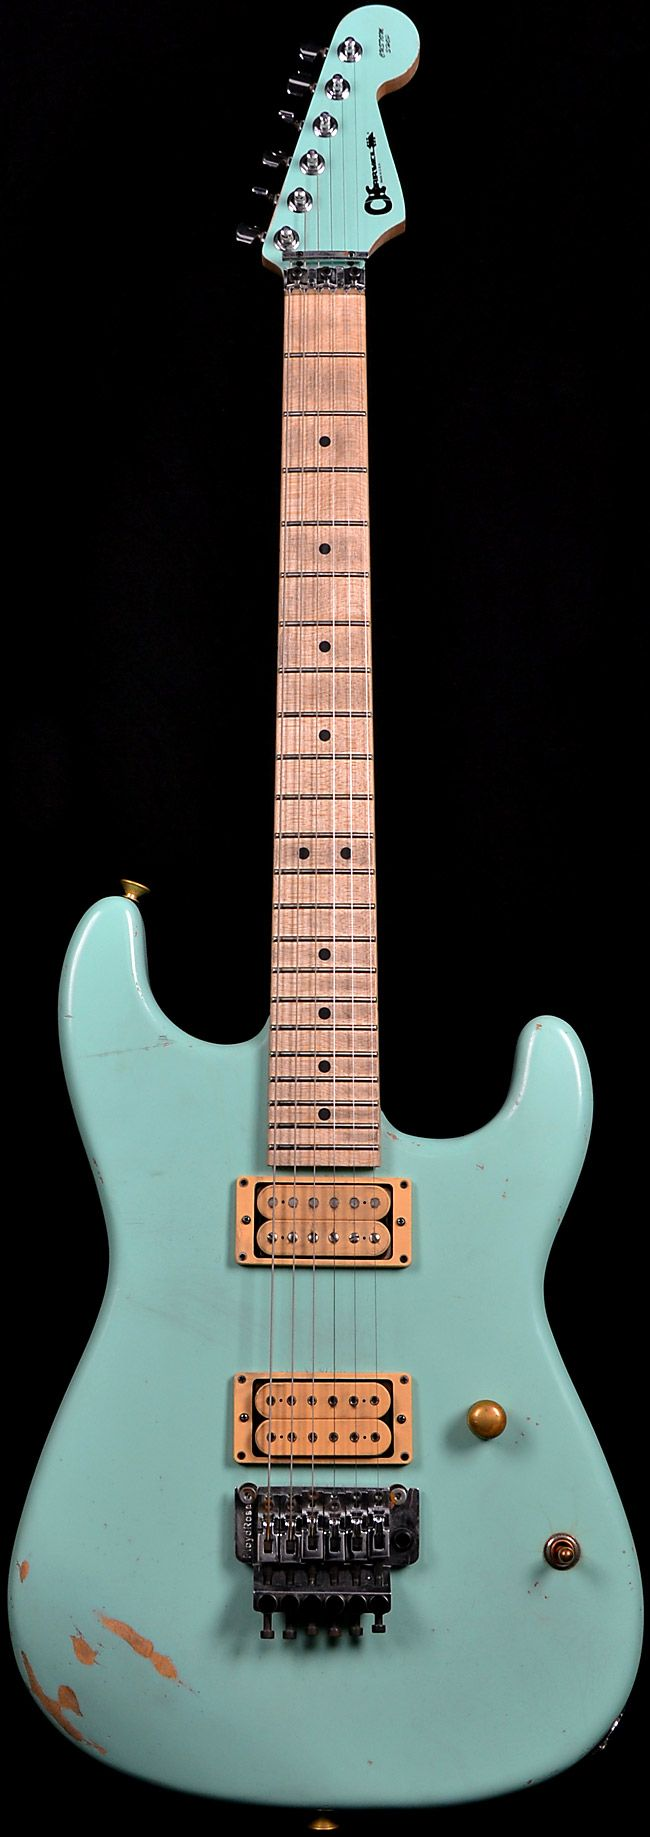 Wild West Guitars : Charvel Custom Shop San Dimas TORTURED Faded Surf Green Magna